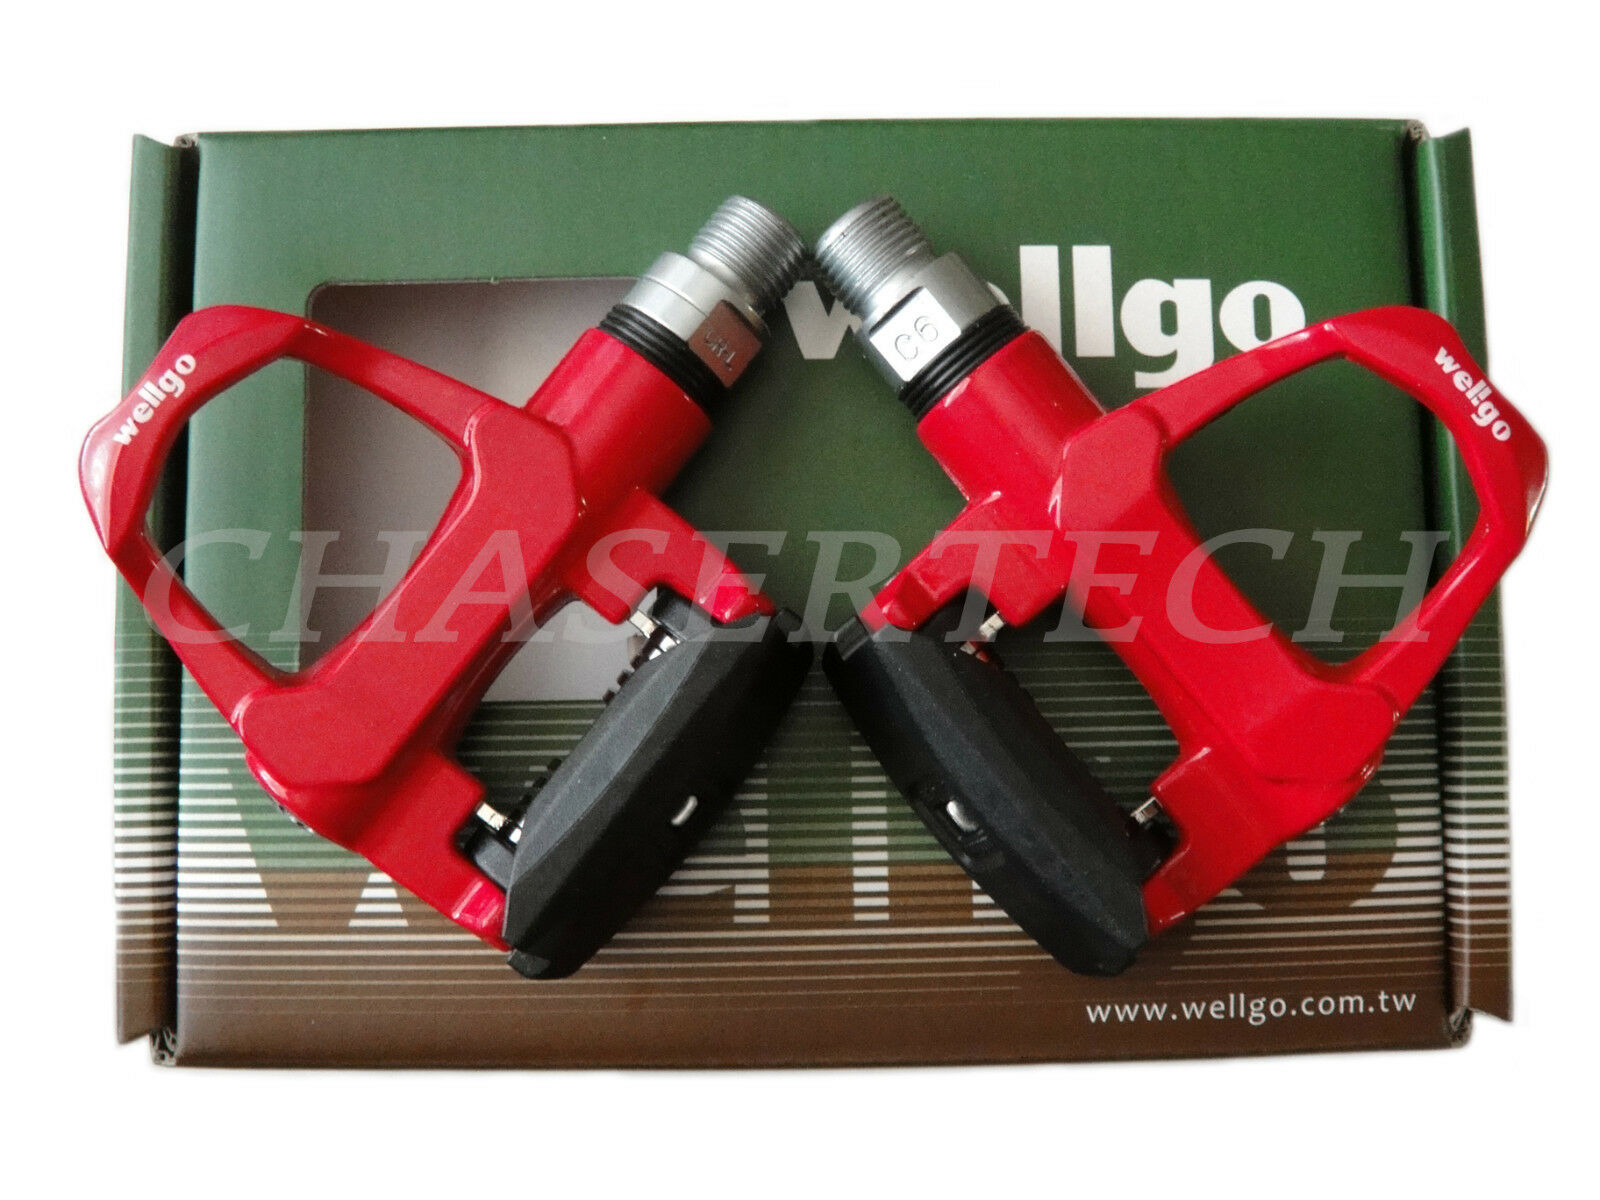 New Wellgo R096B Road Bike Magnesium Pedals Cr-Mo Axle 9 16  Red